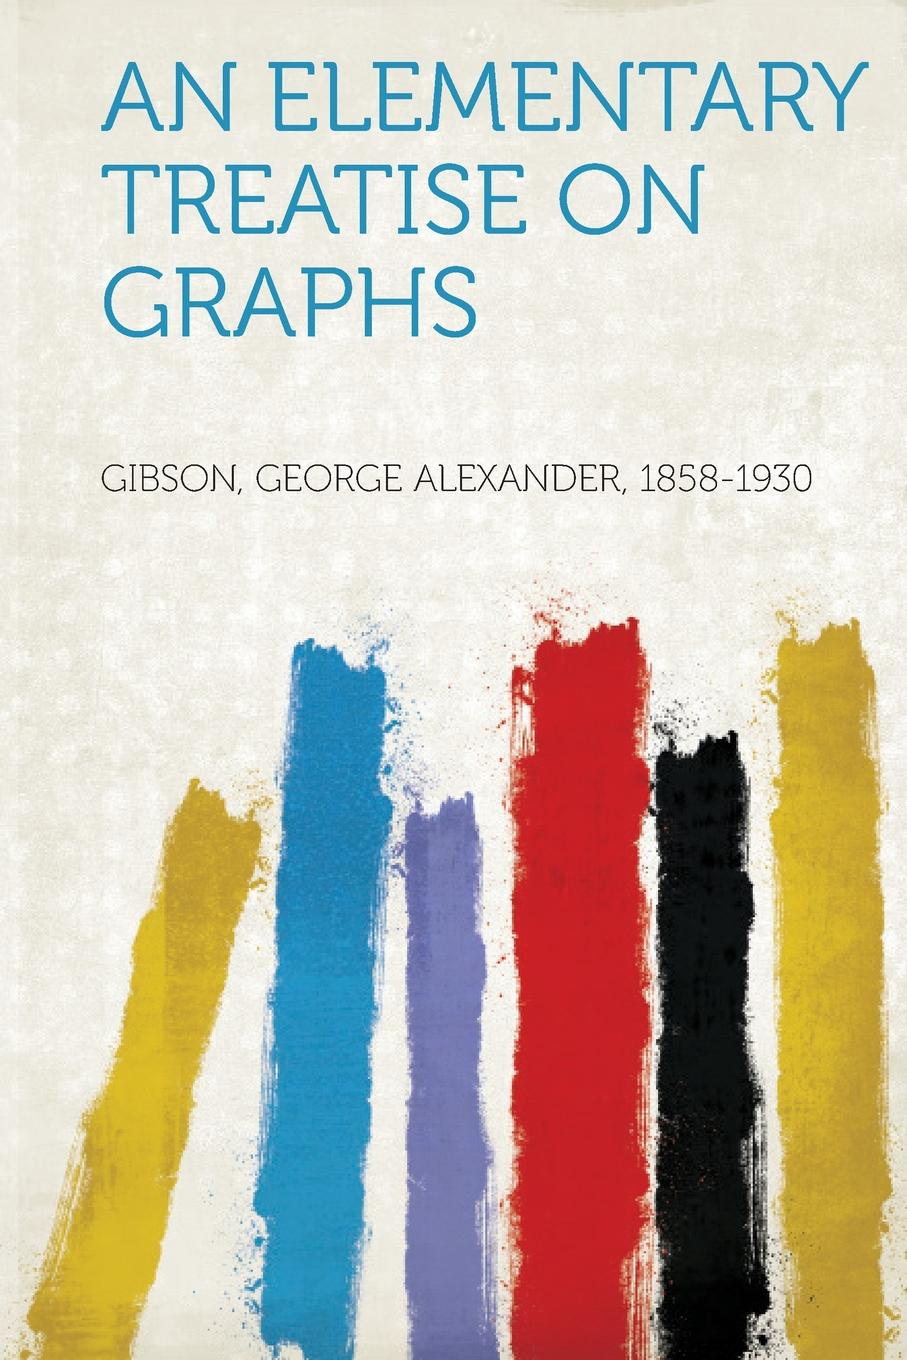 An Elementary Treatise on Graphs